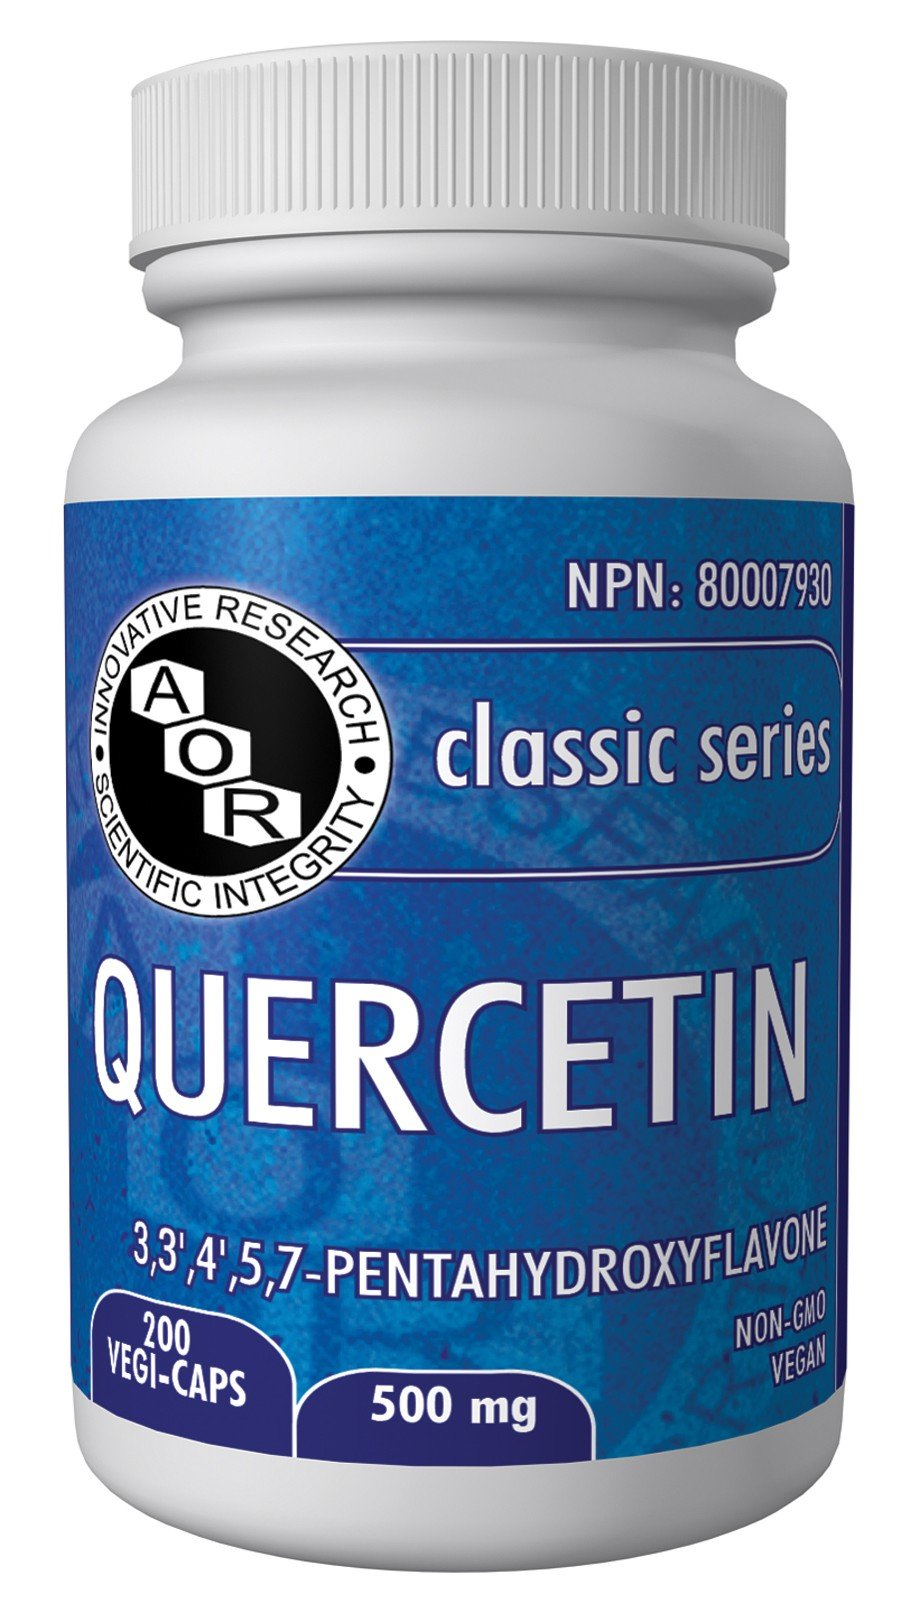 AOR Quercetin Can Calm Your Allergies And Protect Your Skin